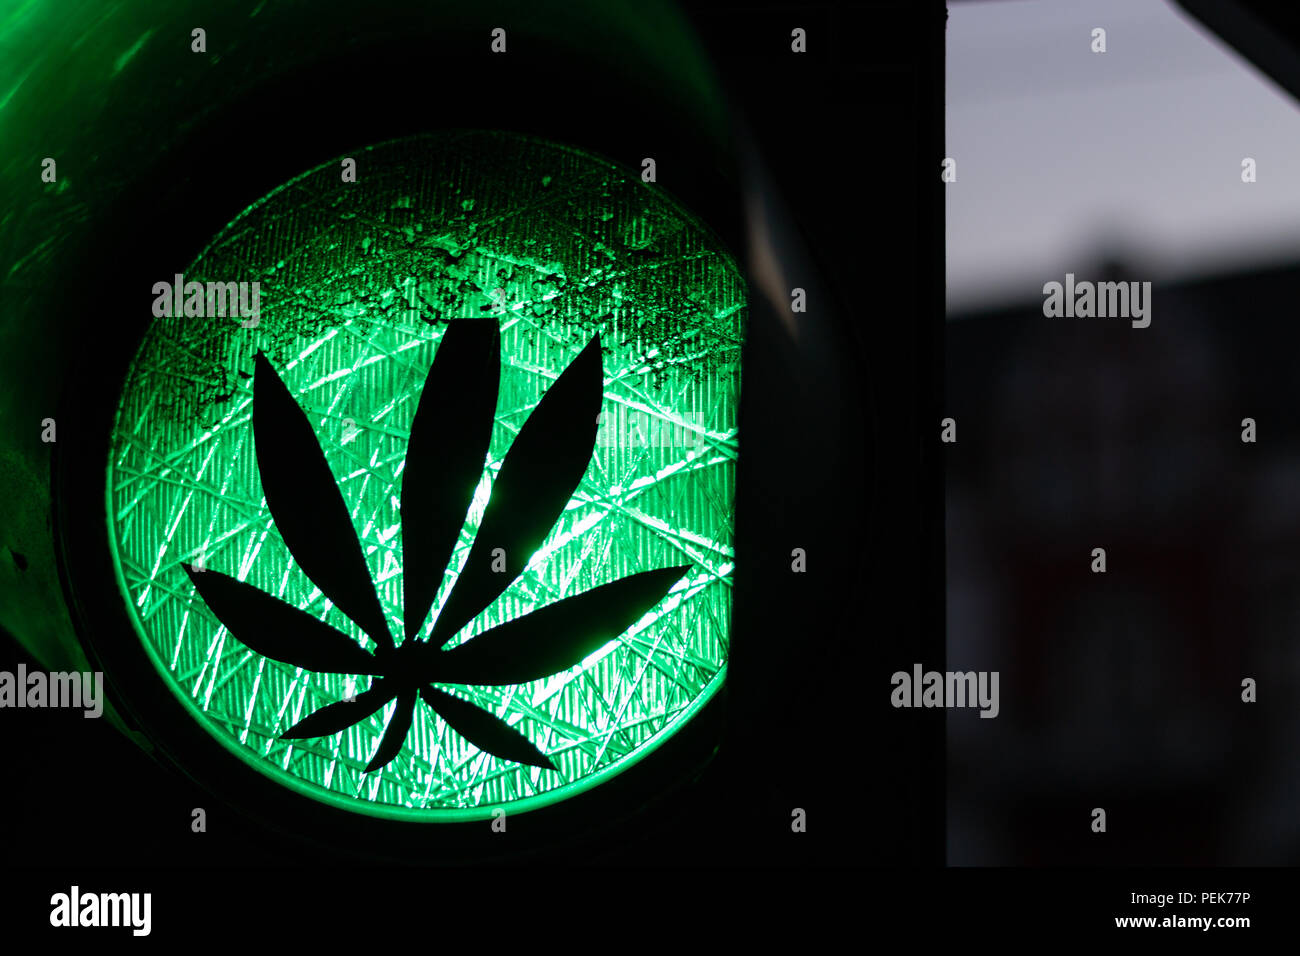 A Sticker Of A Plant On A Green Traffic Light As A Symbol Of The